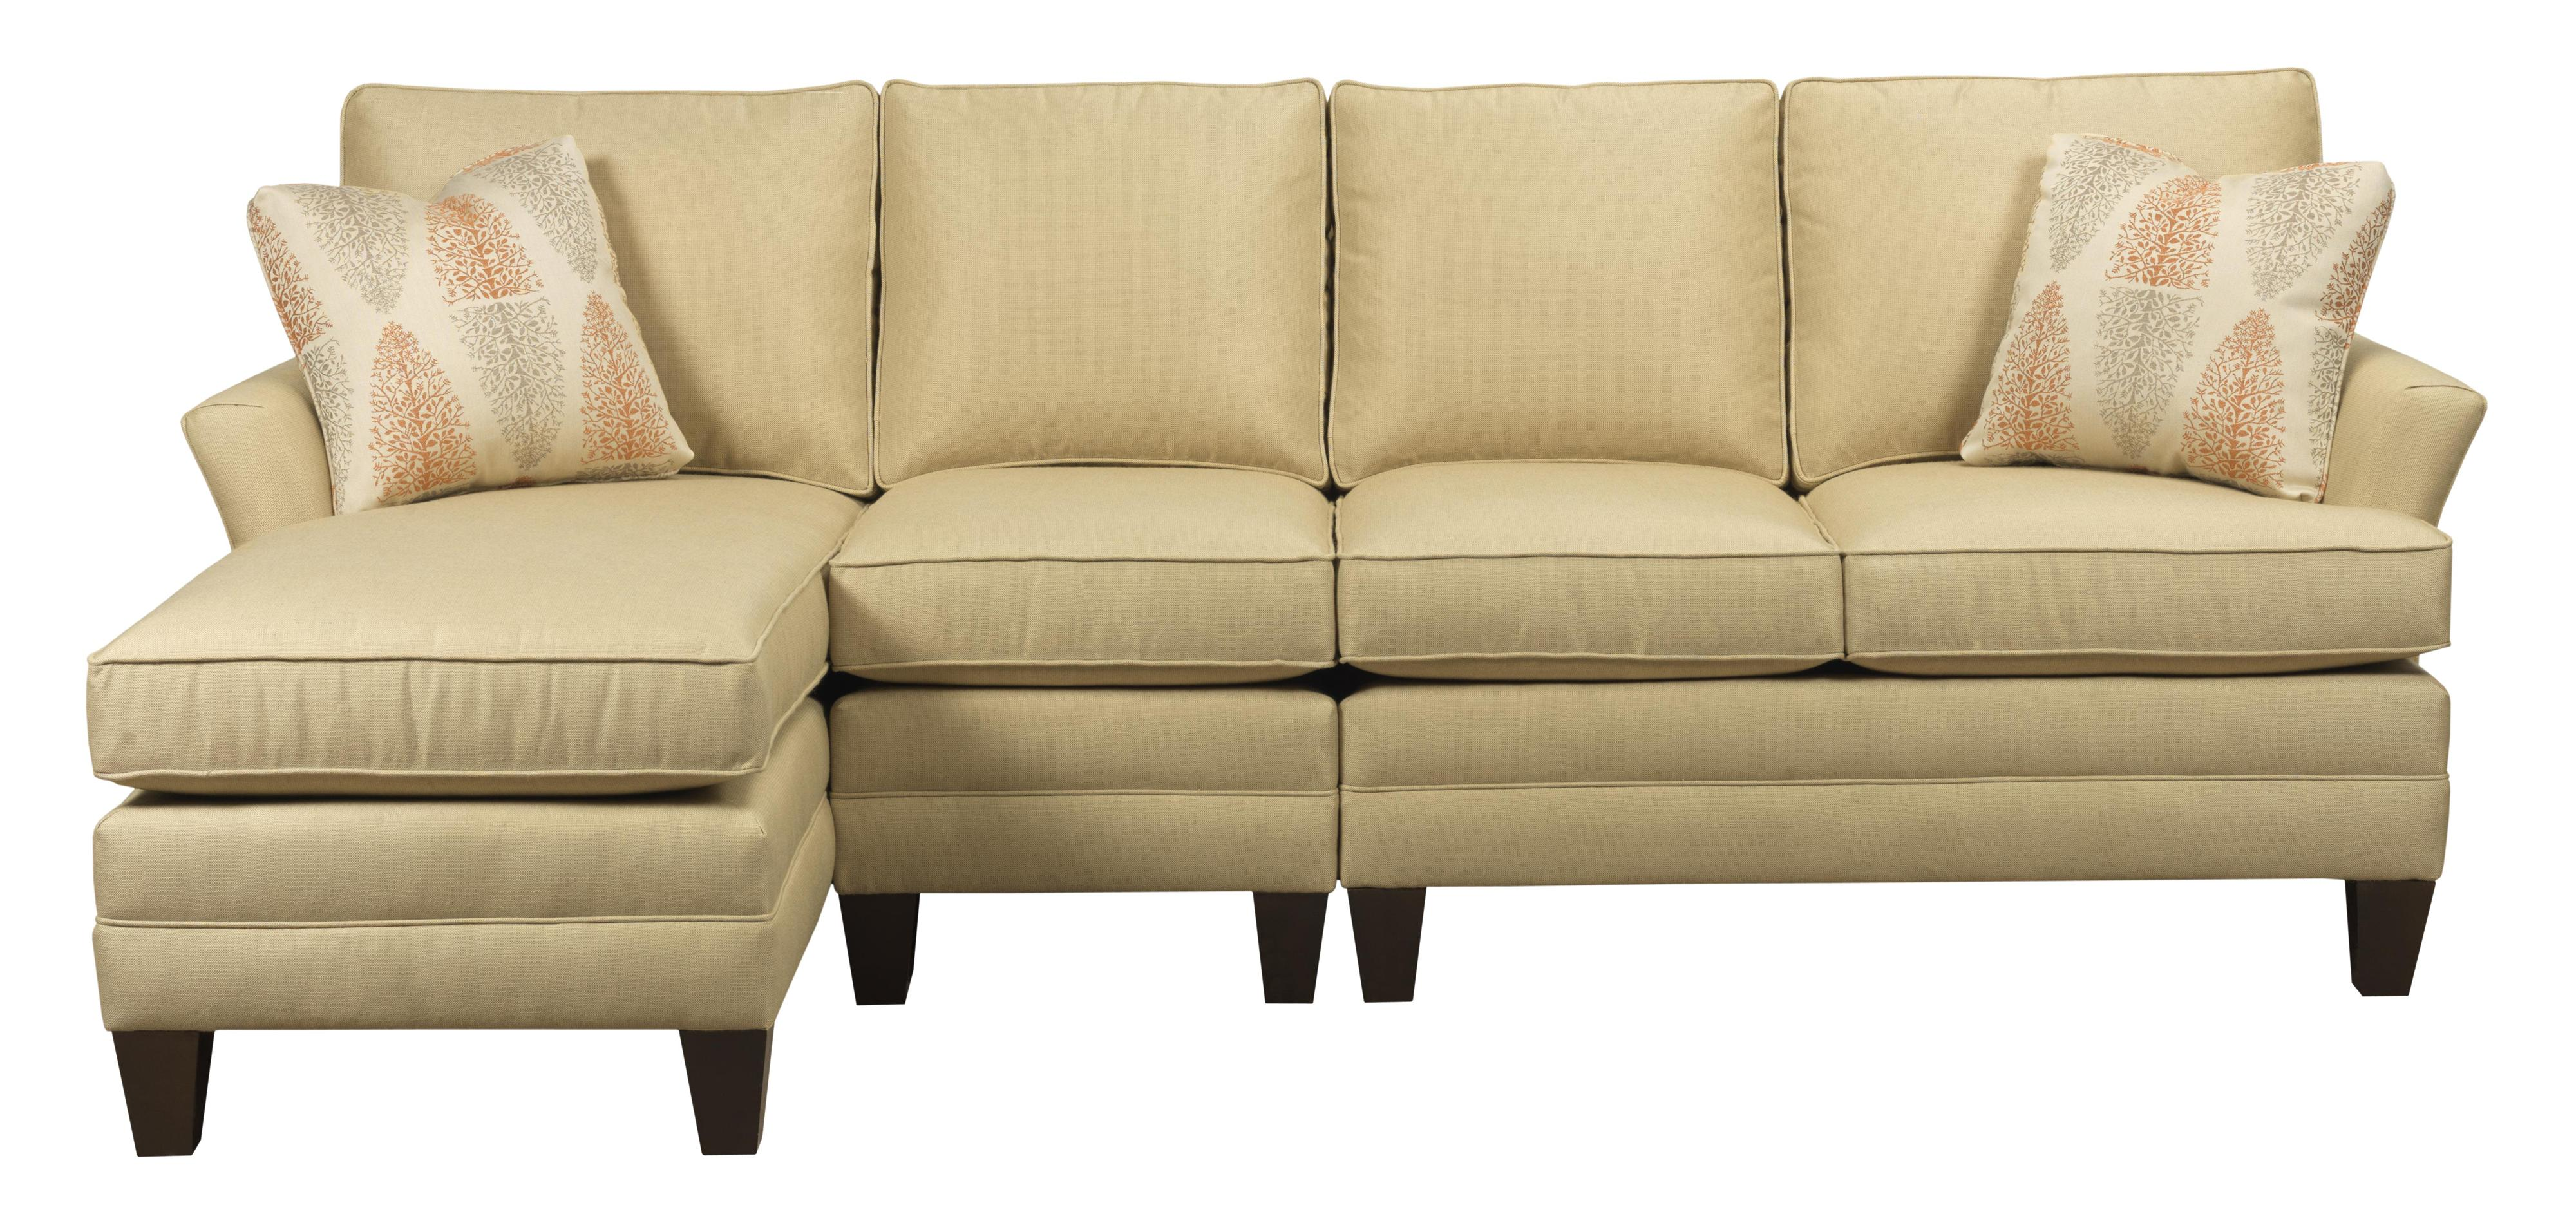 Customizable three piece sectional sofa with raf chaise by for 3 piece sectional with chaise